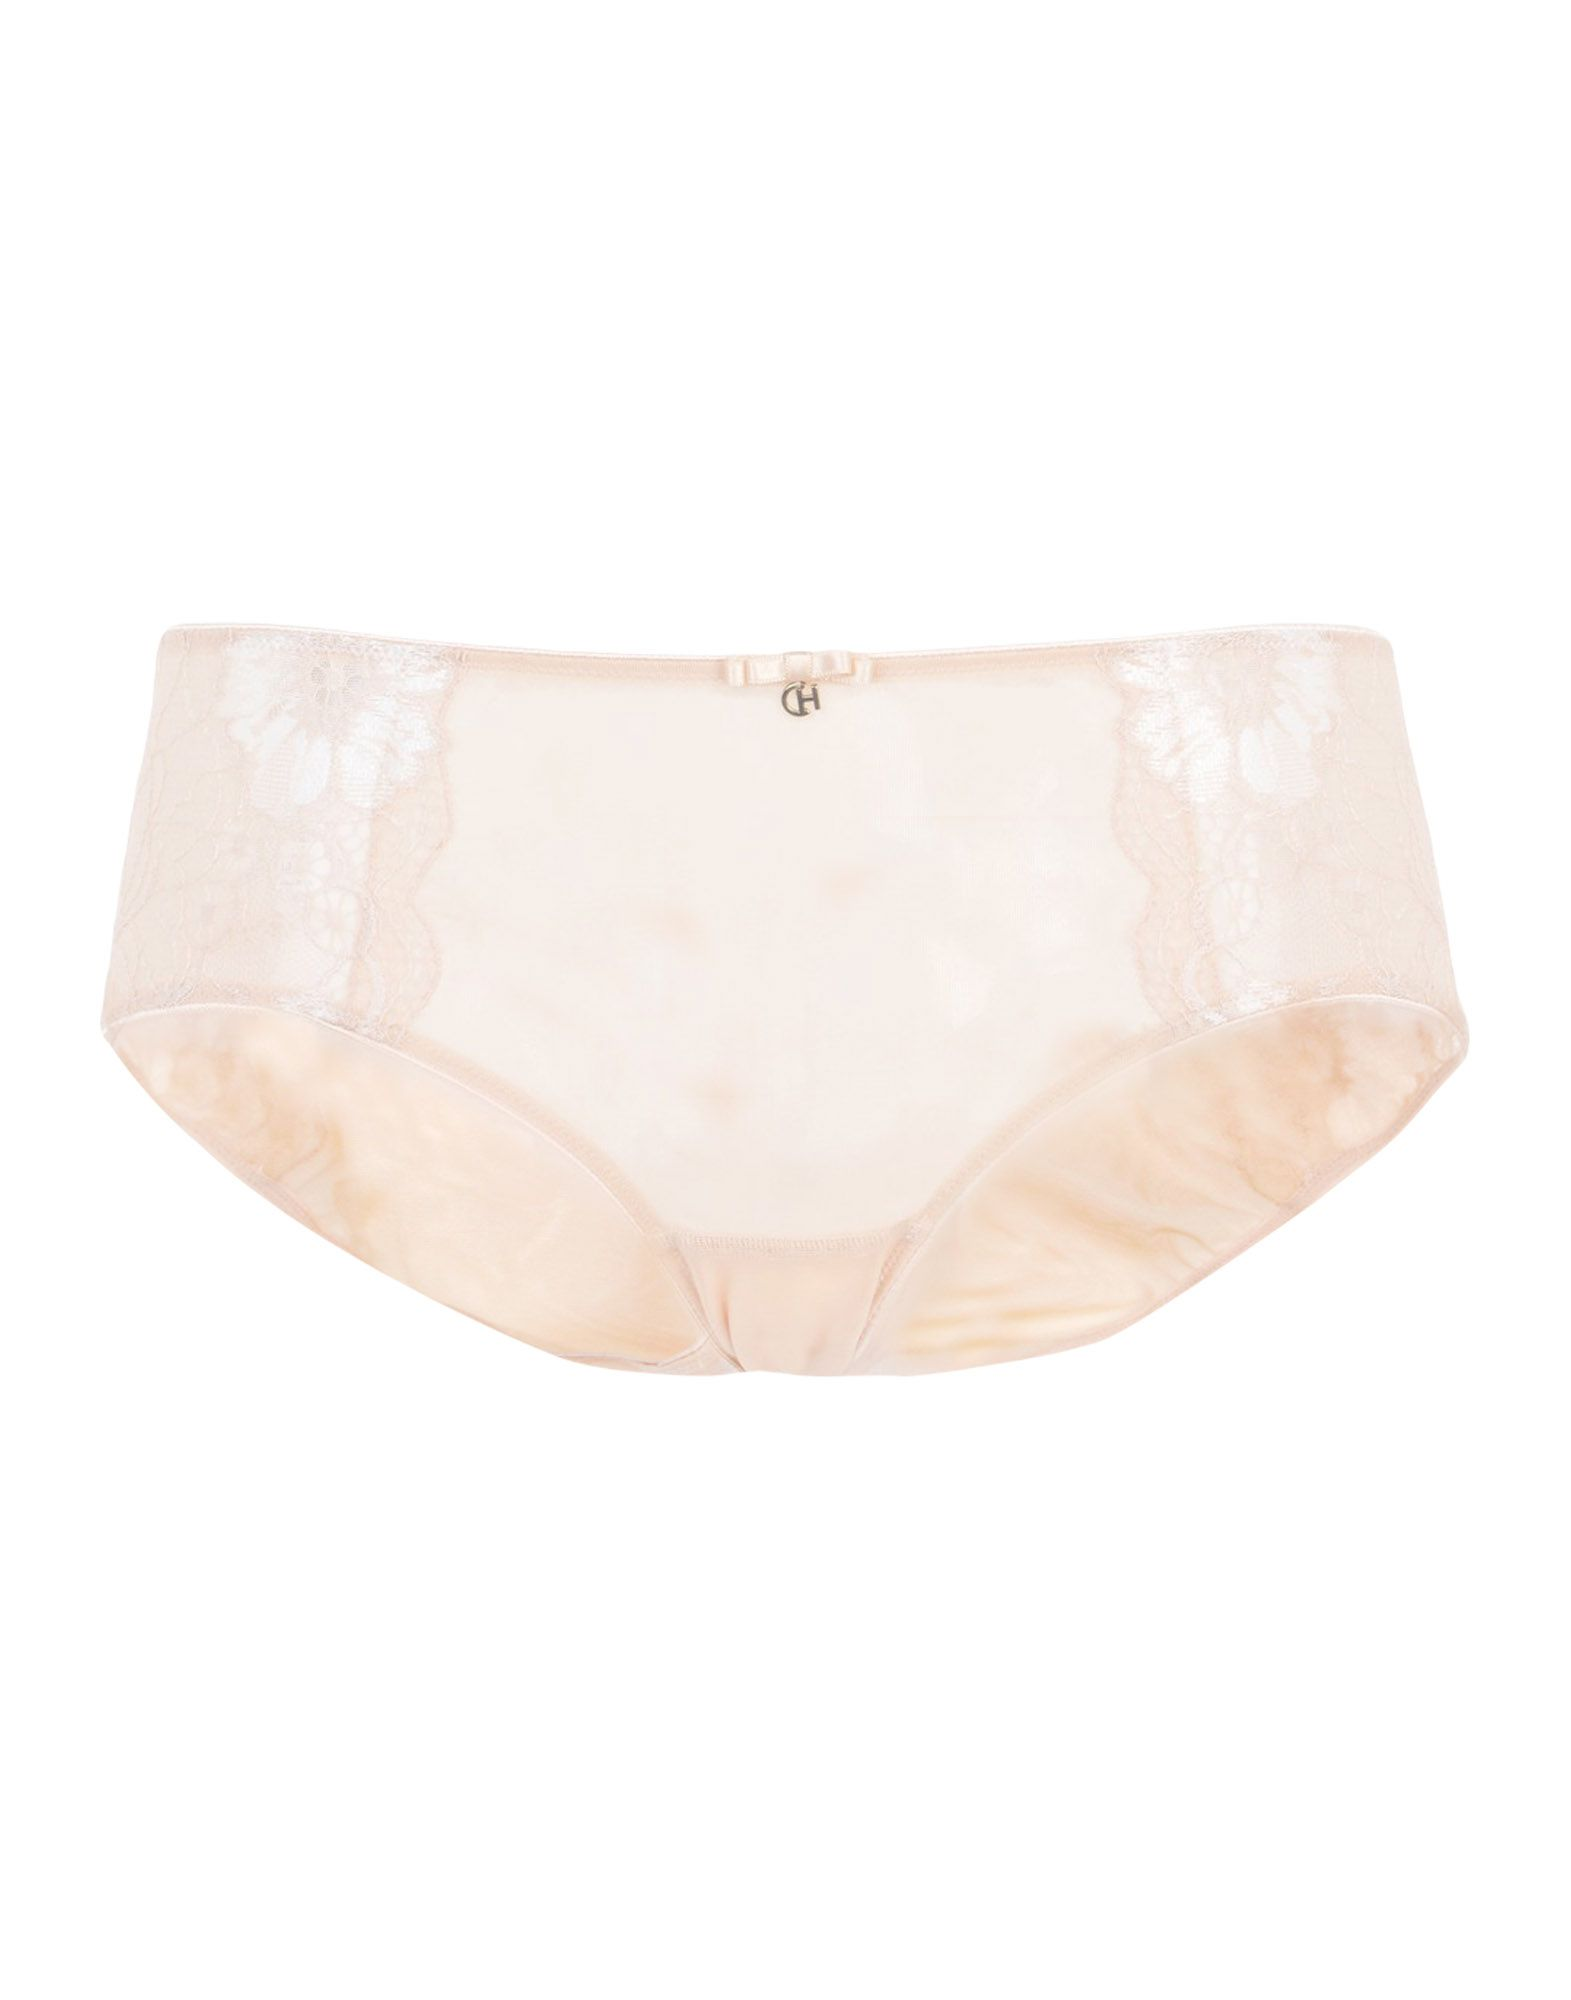 CHRISTIES Boyshorts in Pale Pink